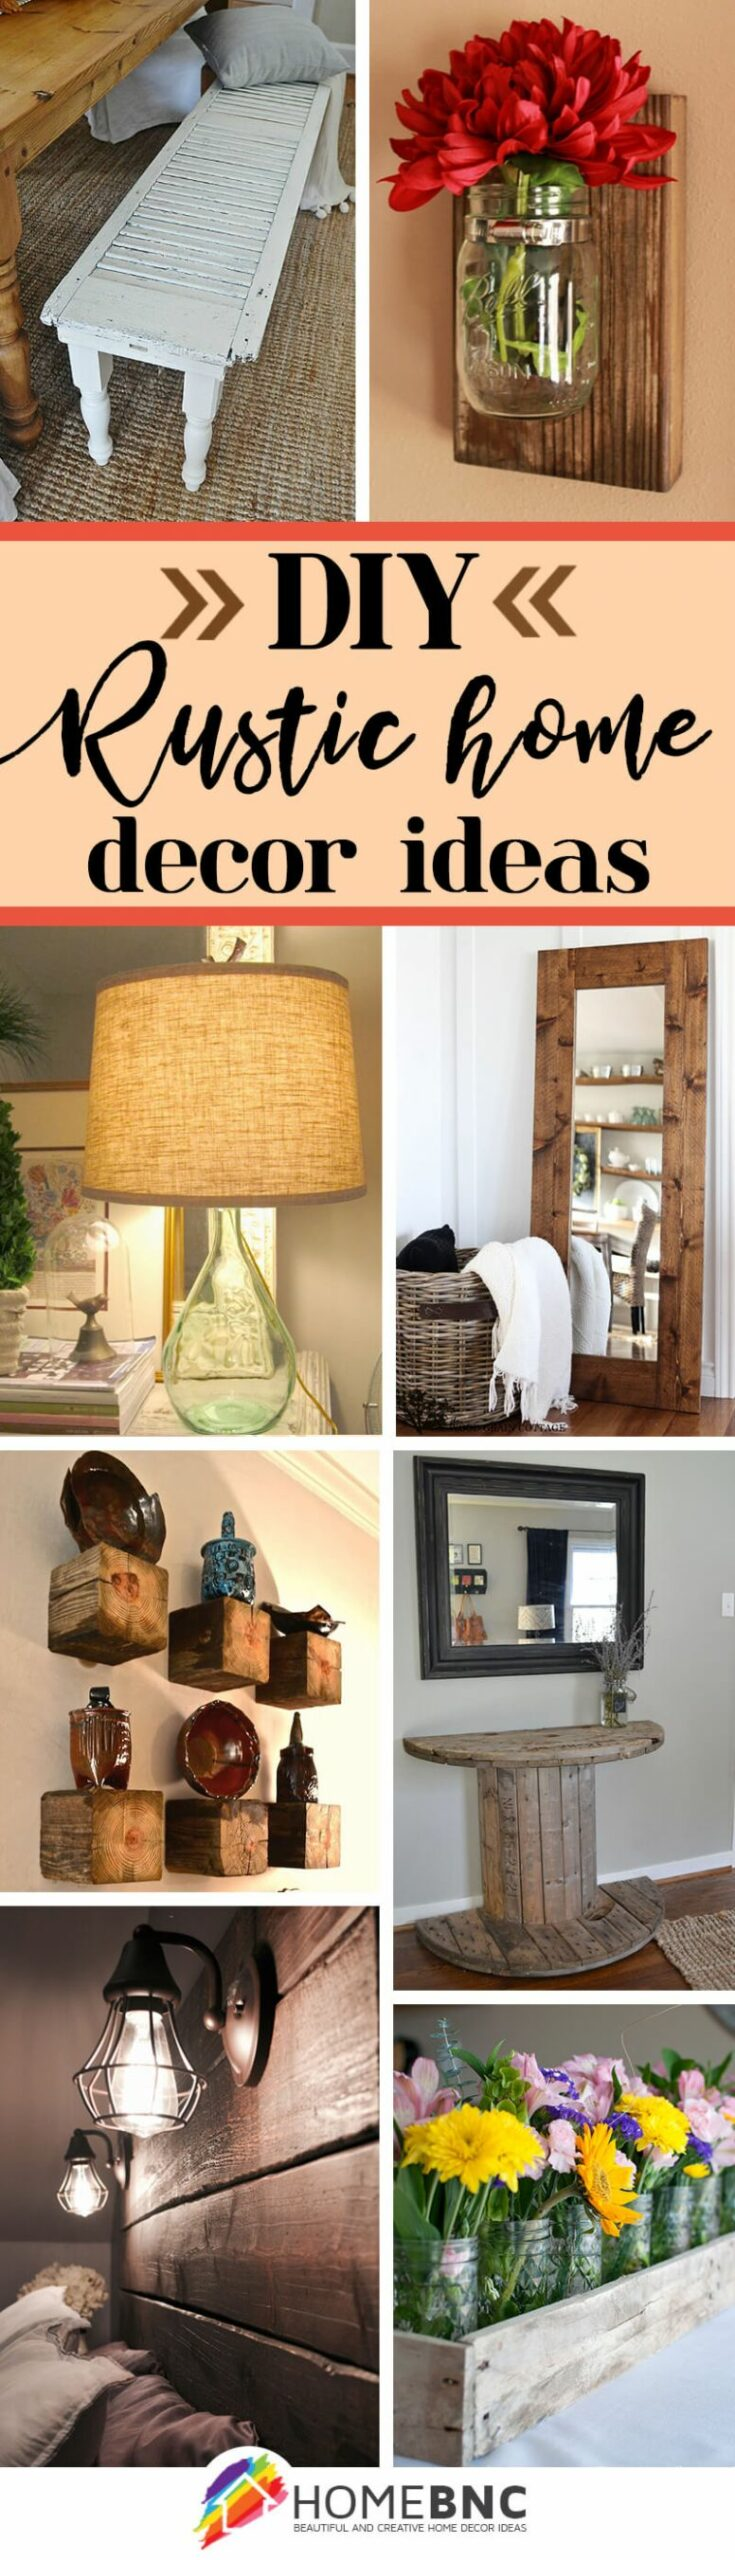 11 Best DIY Rustic Home Decor Ideas and Designs for 11